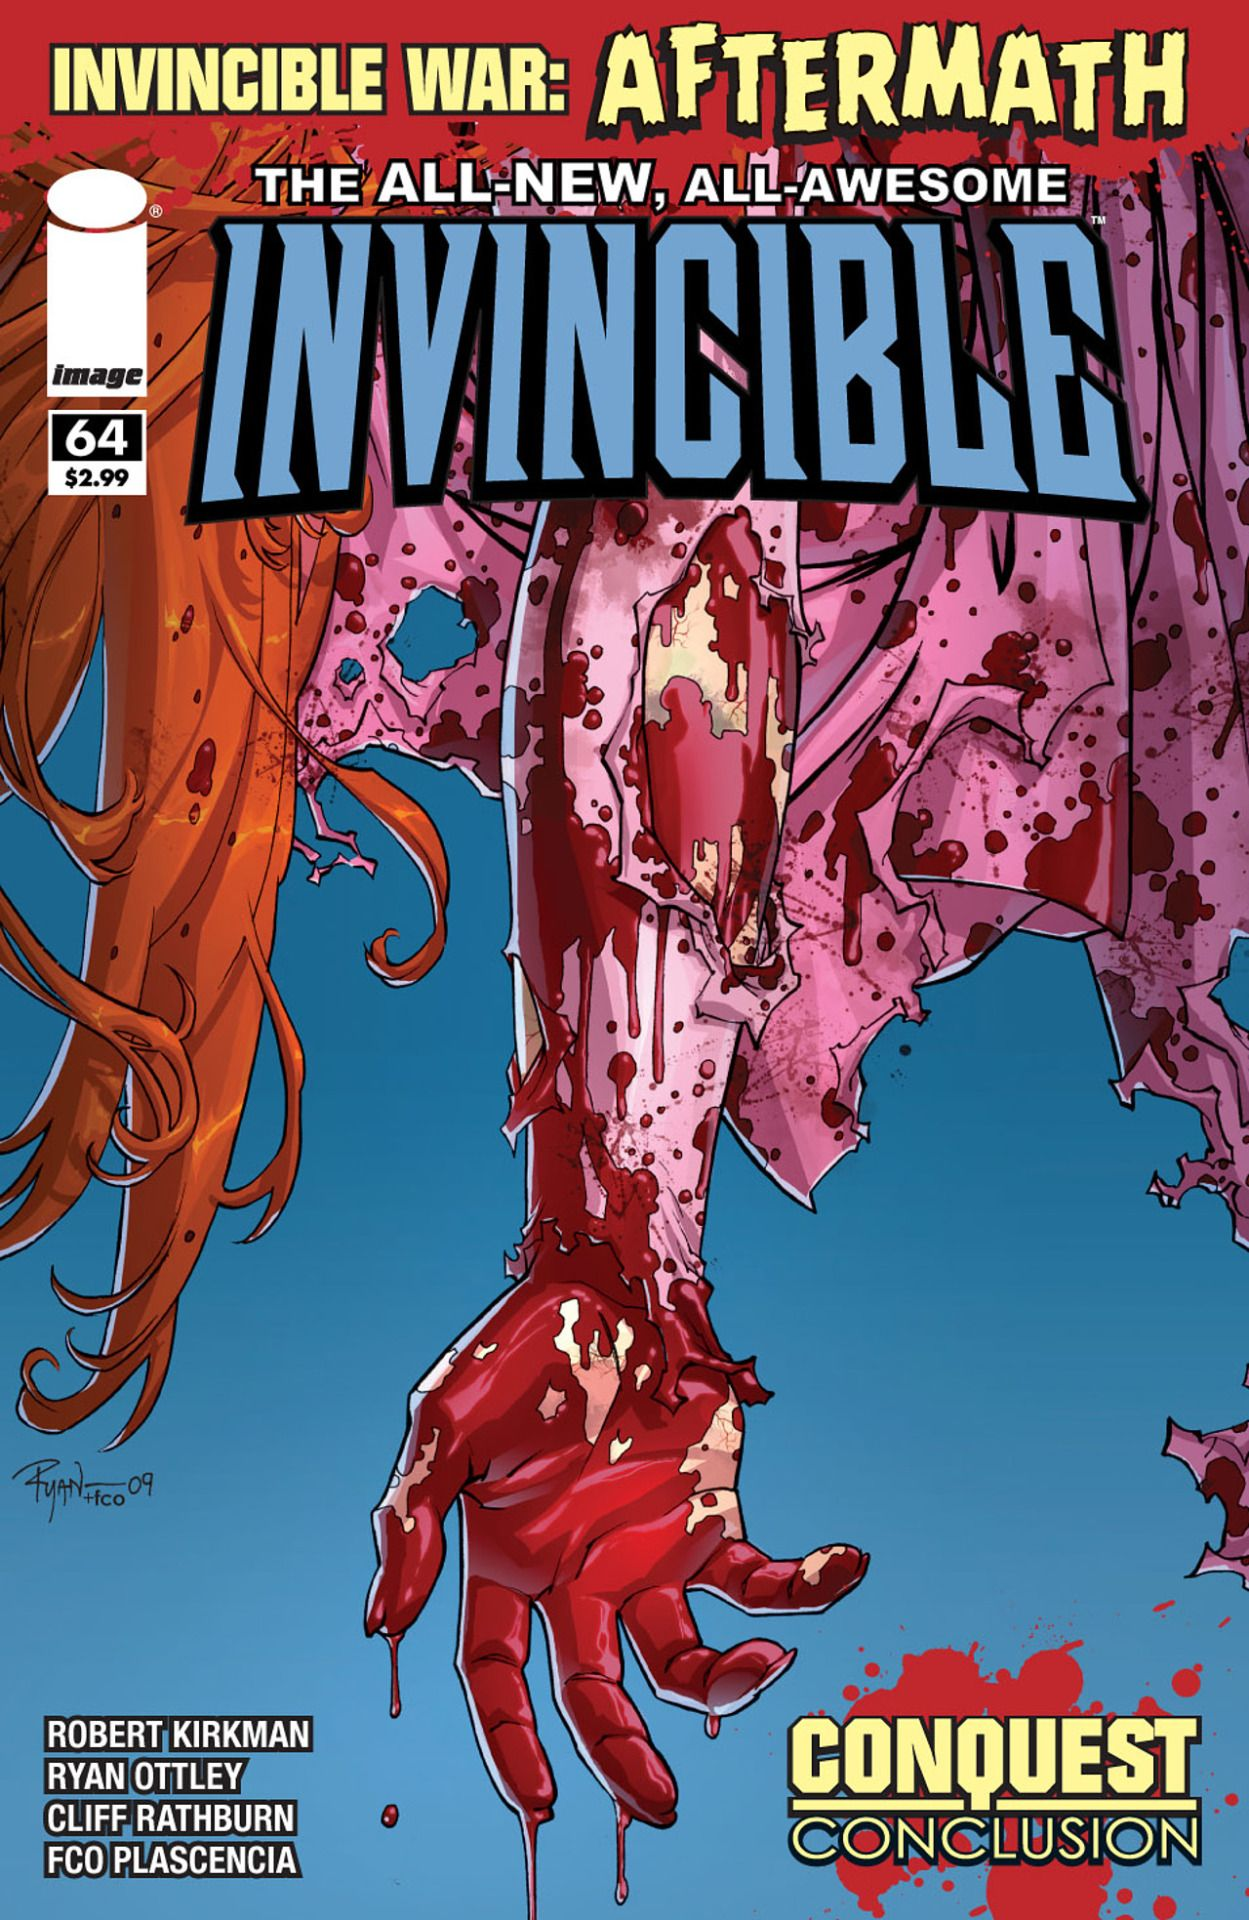 Invincible #64 by Ryan Ottley